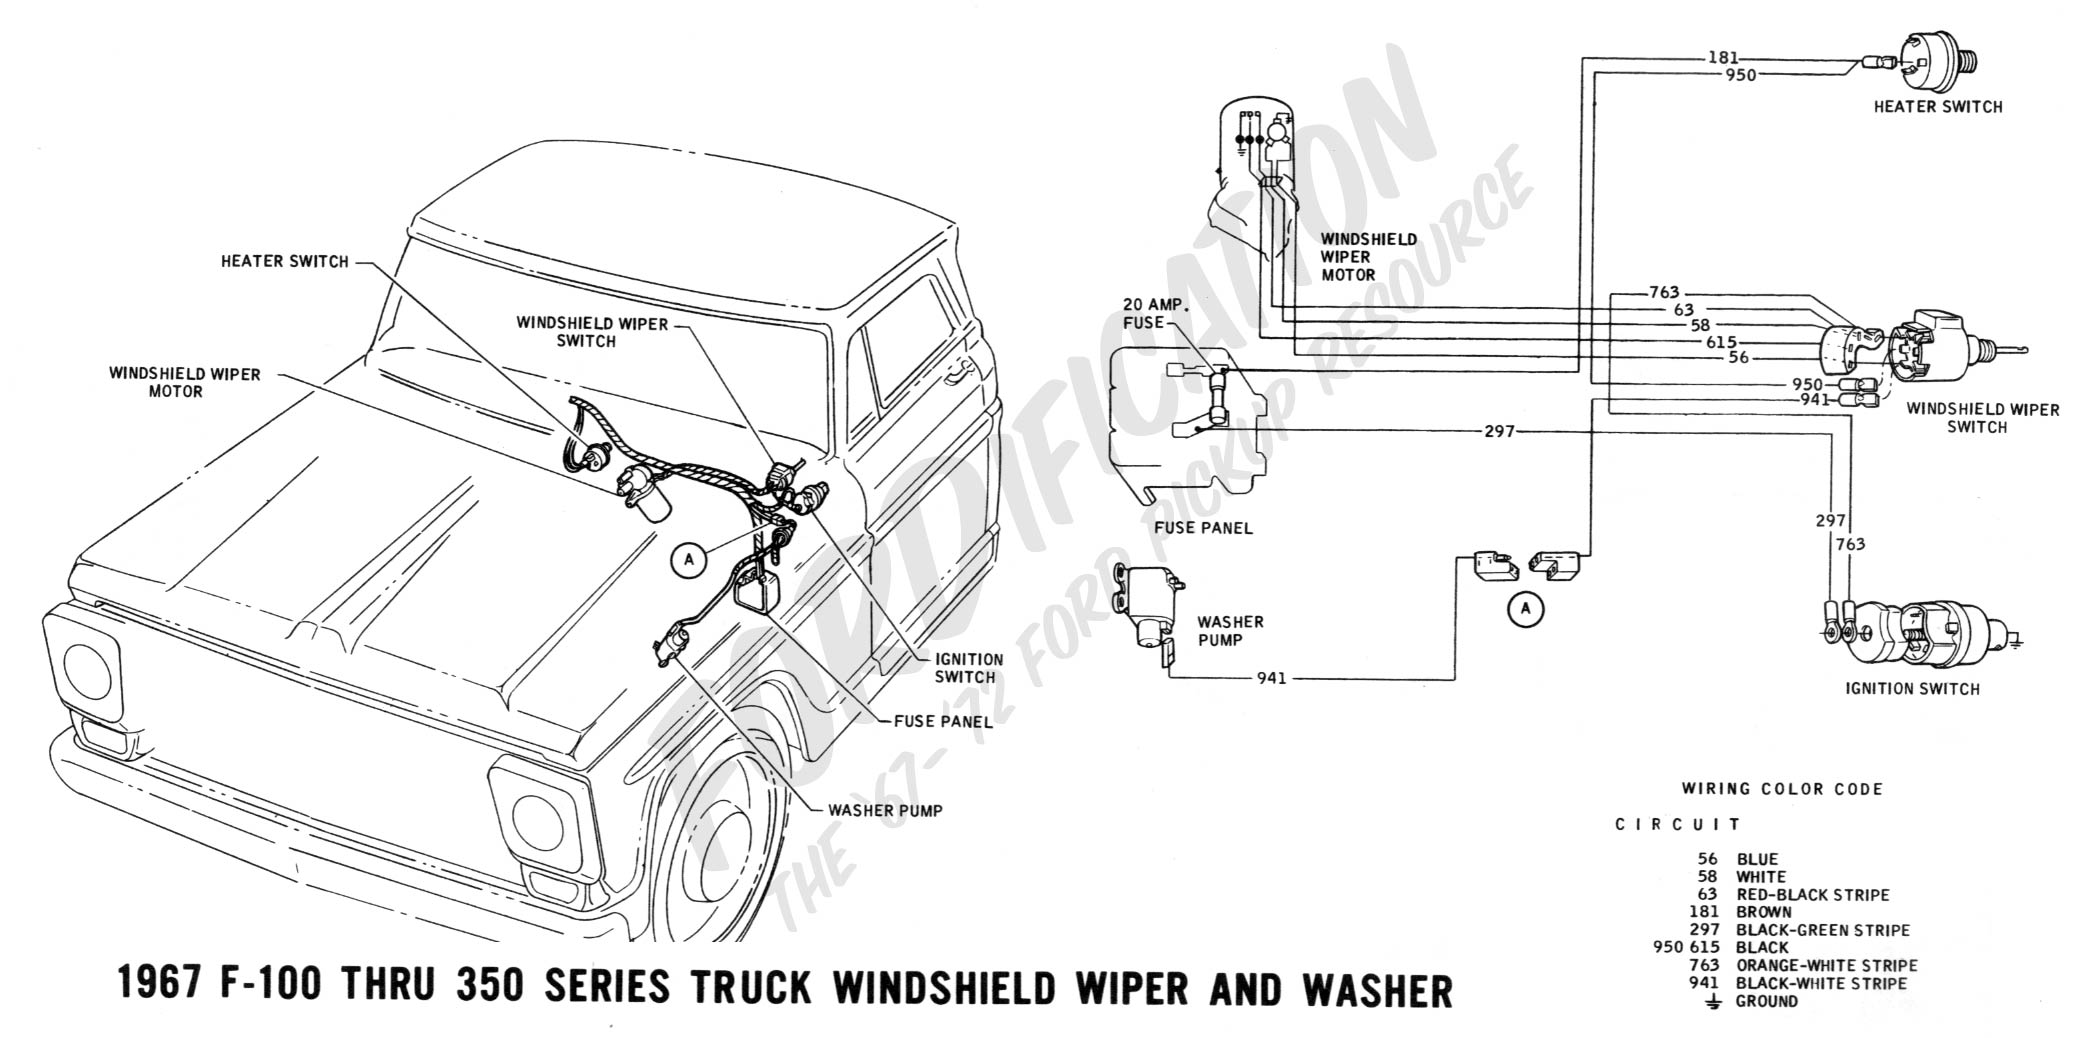 68 Chevelle Wiper Motor Wiring Diagram likewise Universal Wiper Switch Wiring Diagram as well Schematics h together with Schematics h also Alternator Upgrades Junkyard Builder. on universal wiper motor wiring diagram